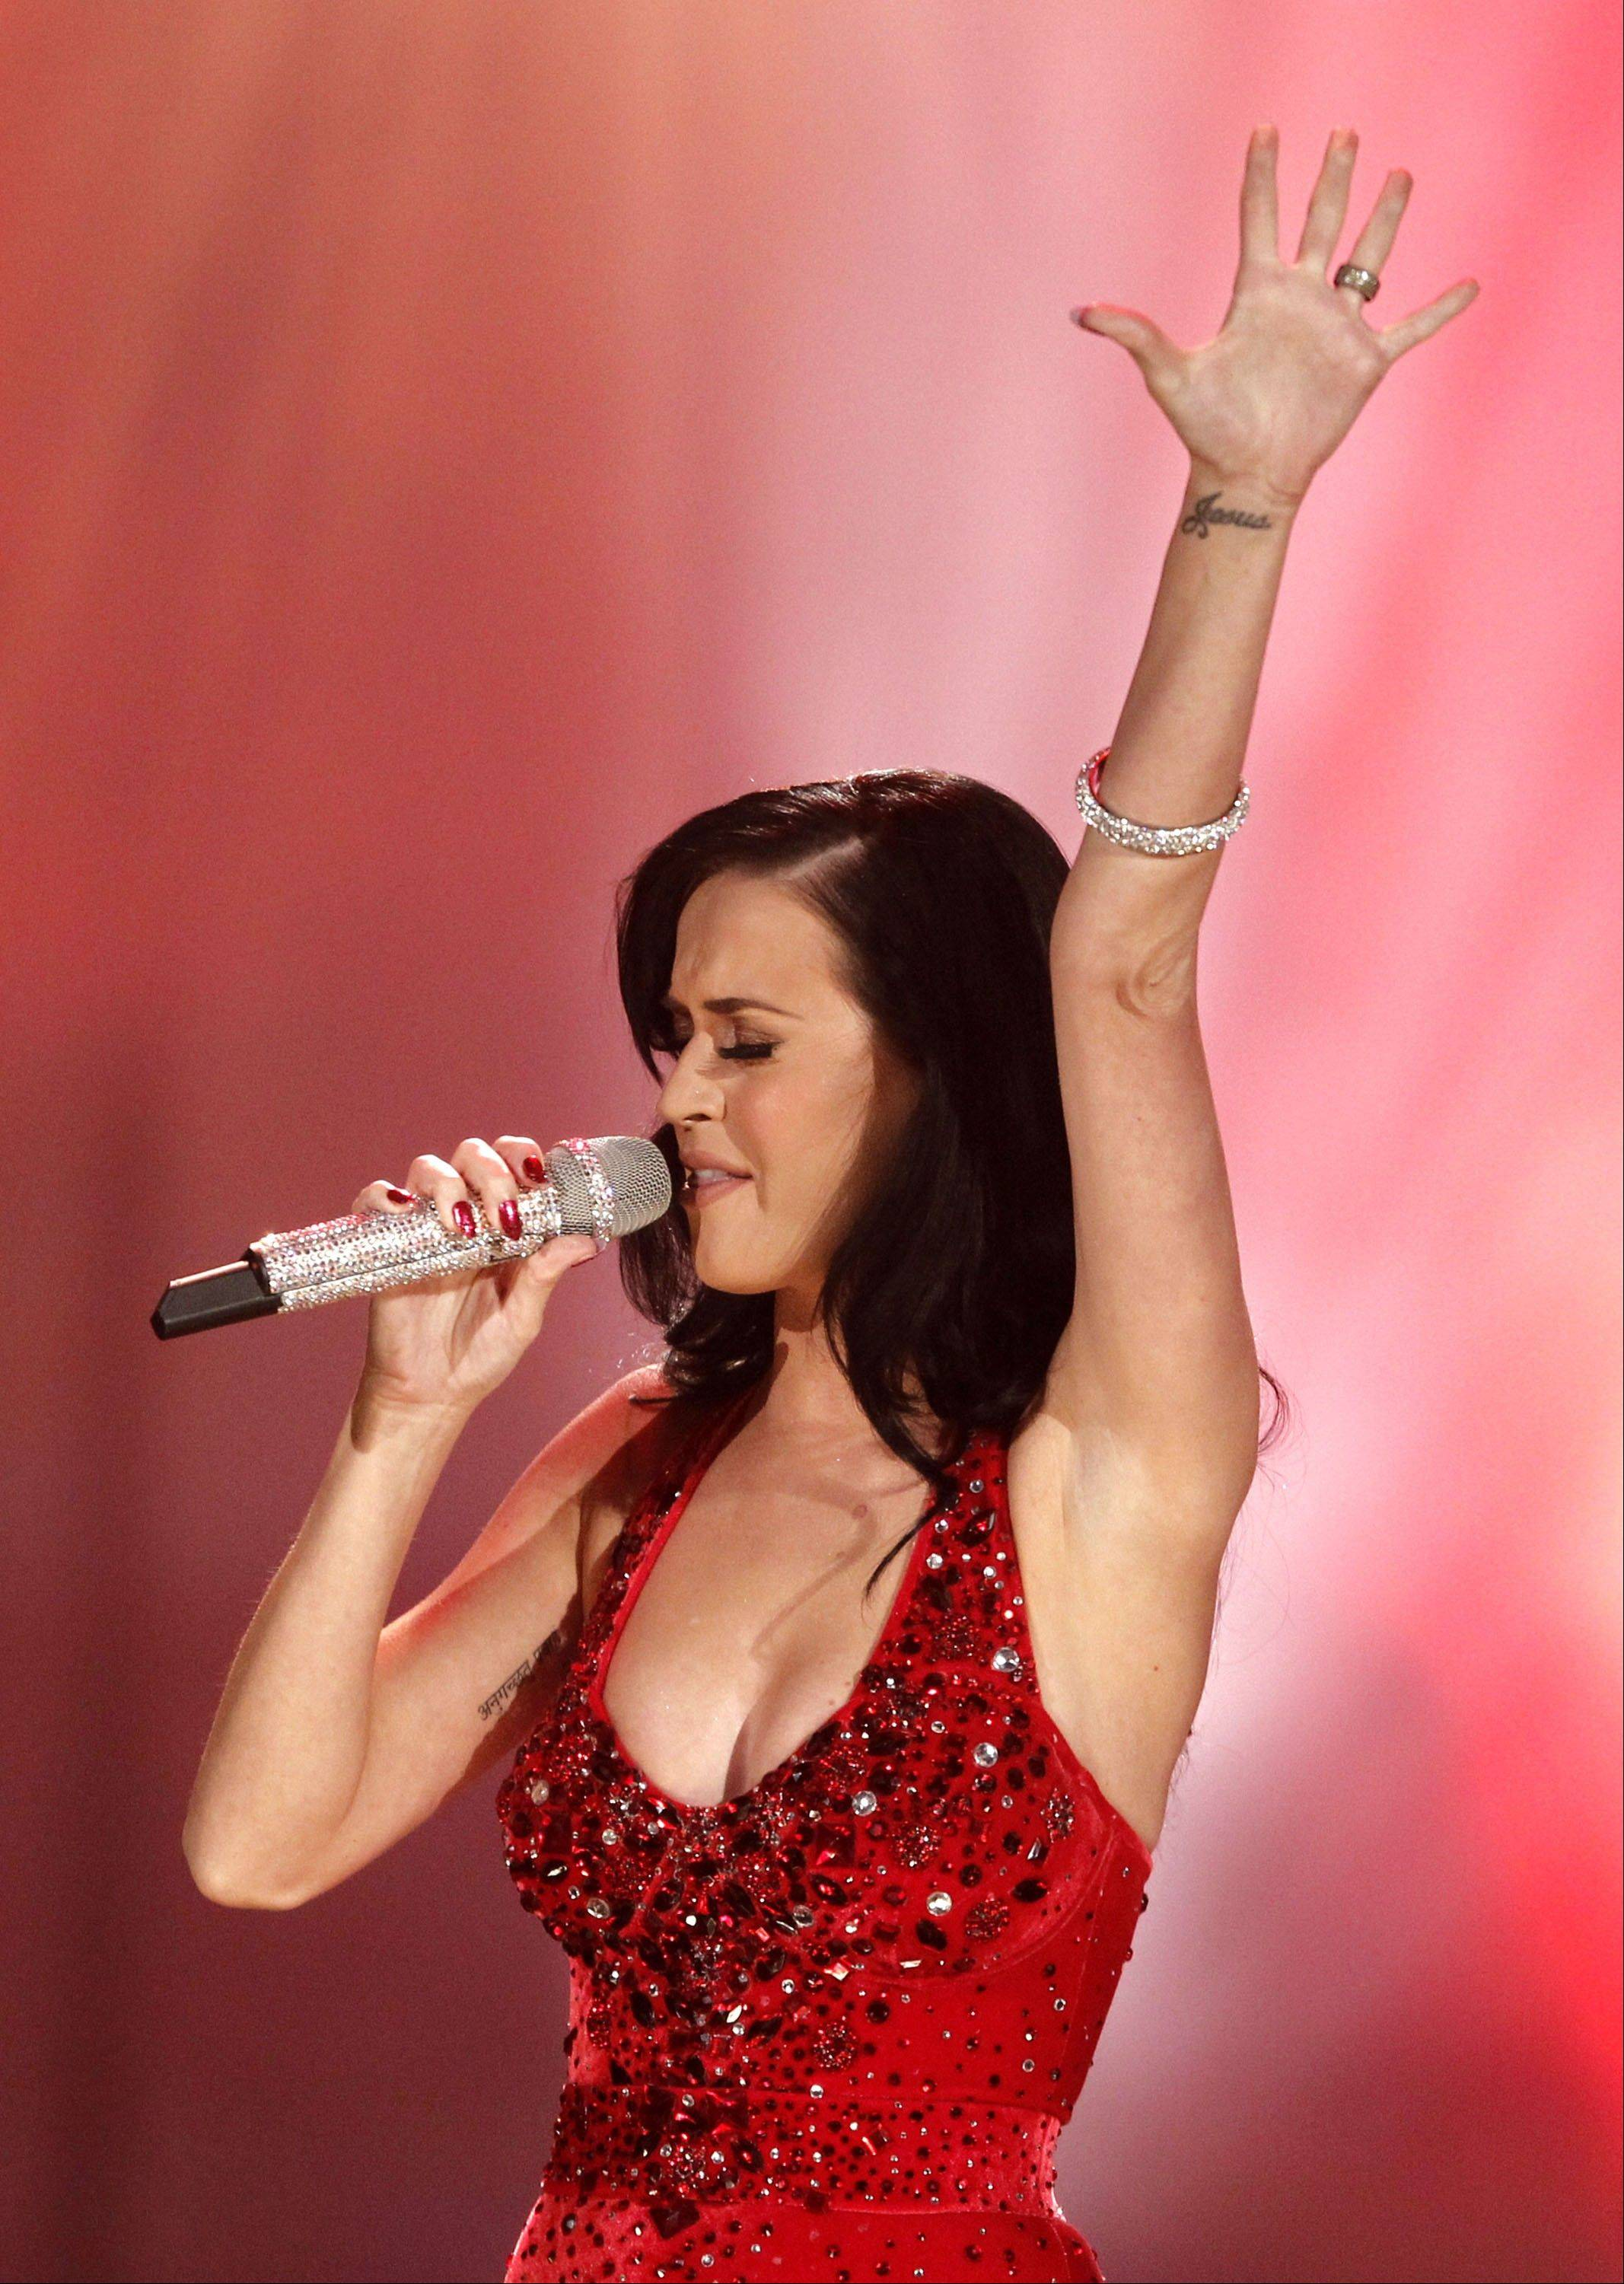 Katy Perry will perform a makeup show Sunday at Allstate Arena.